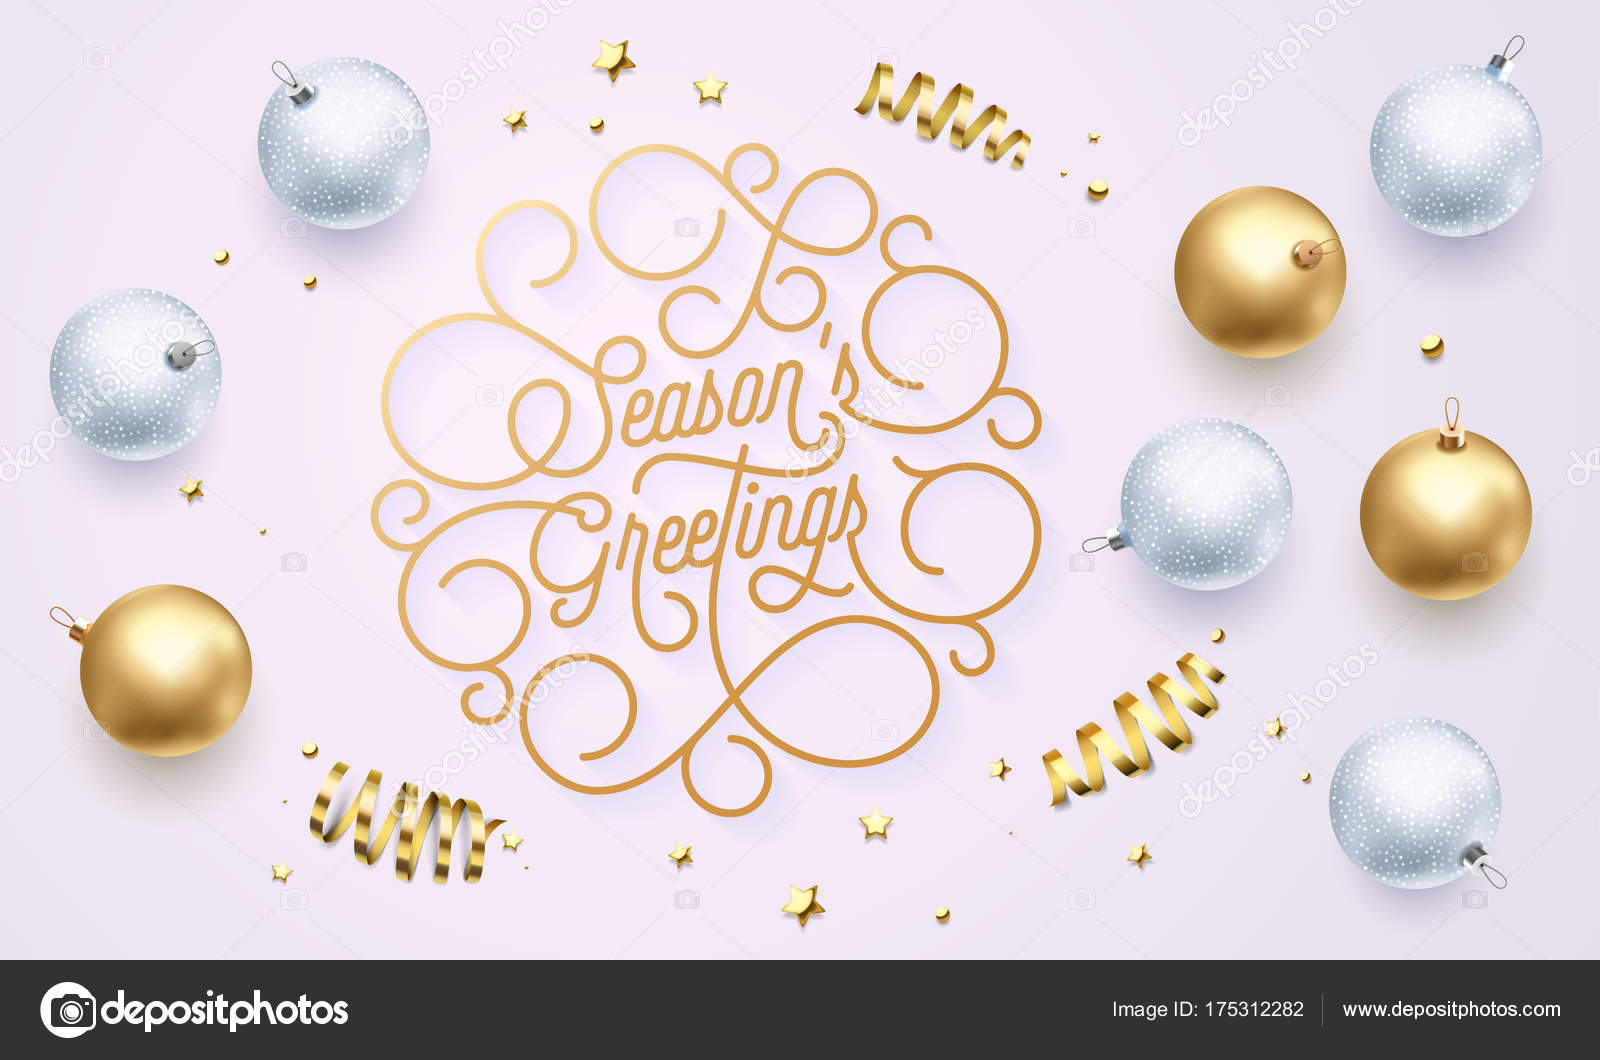 Season greetings font text flourish golden calligraphy lettering of season greetings font text flourish golden calligraphy lettering of swash gold typography for xmas or new m4hsunfo